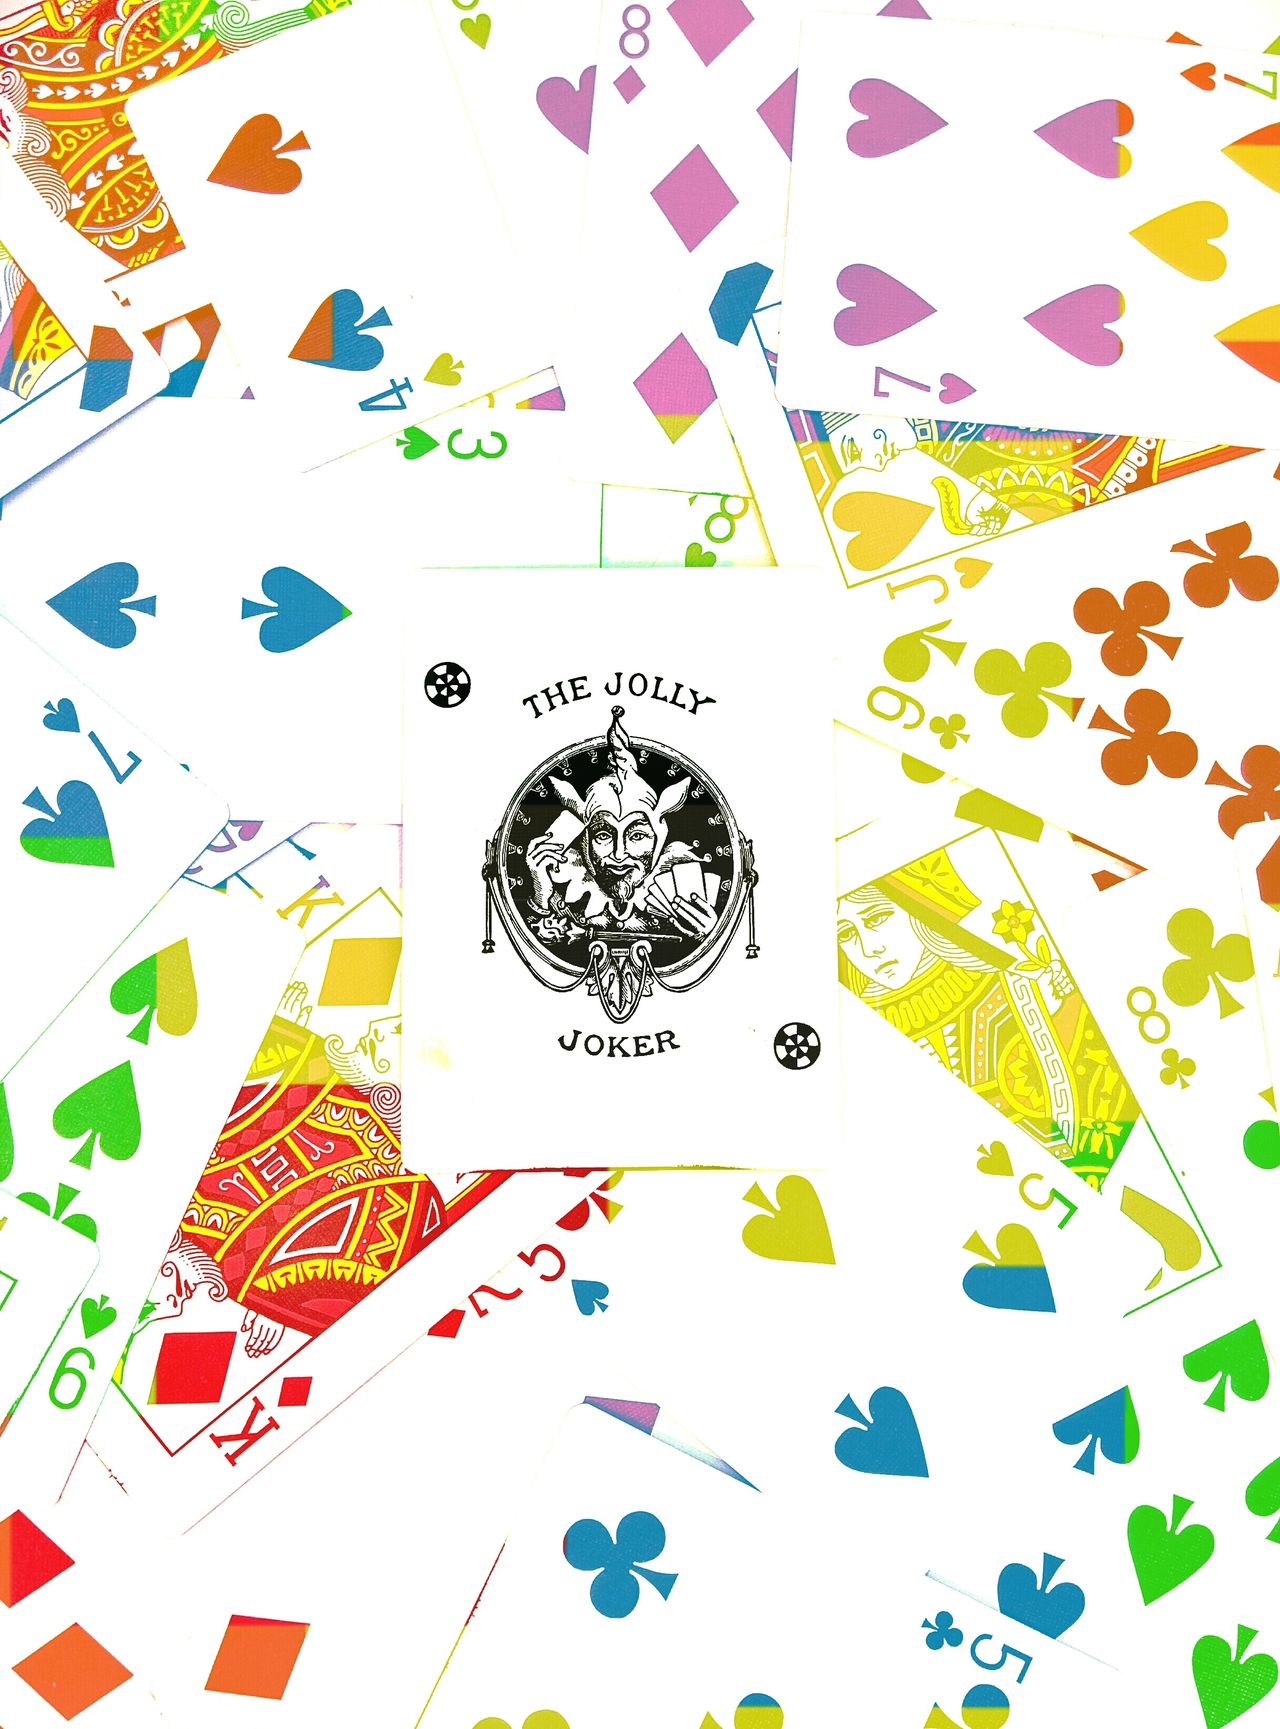 Joker JollyJoker Jolly Cards Shuffle Colourful Colour Of Life